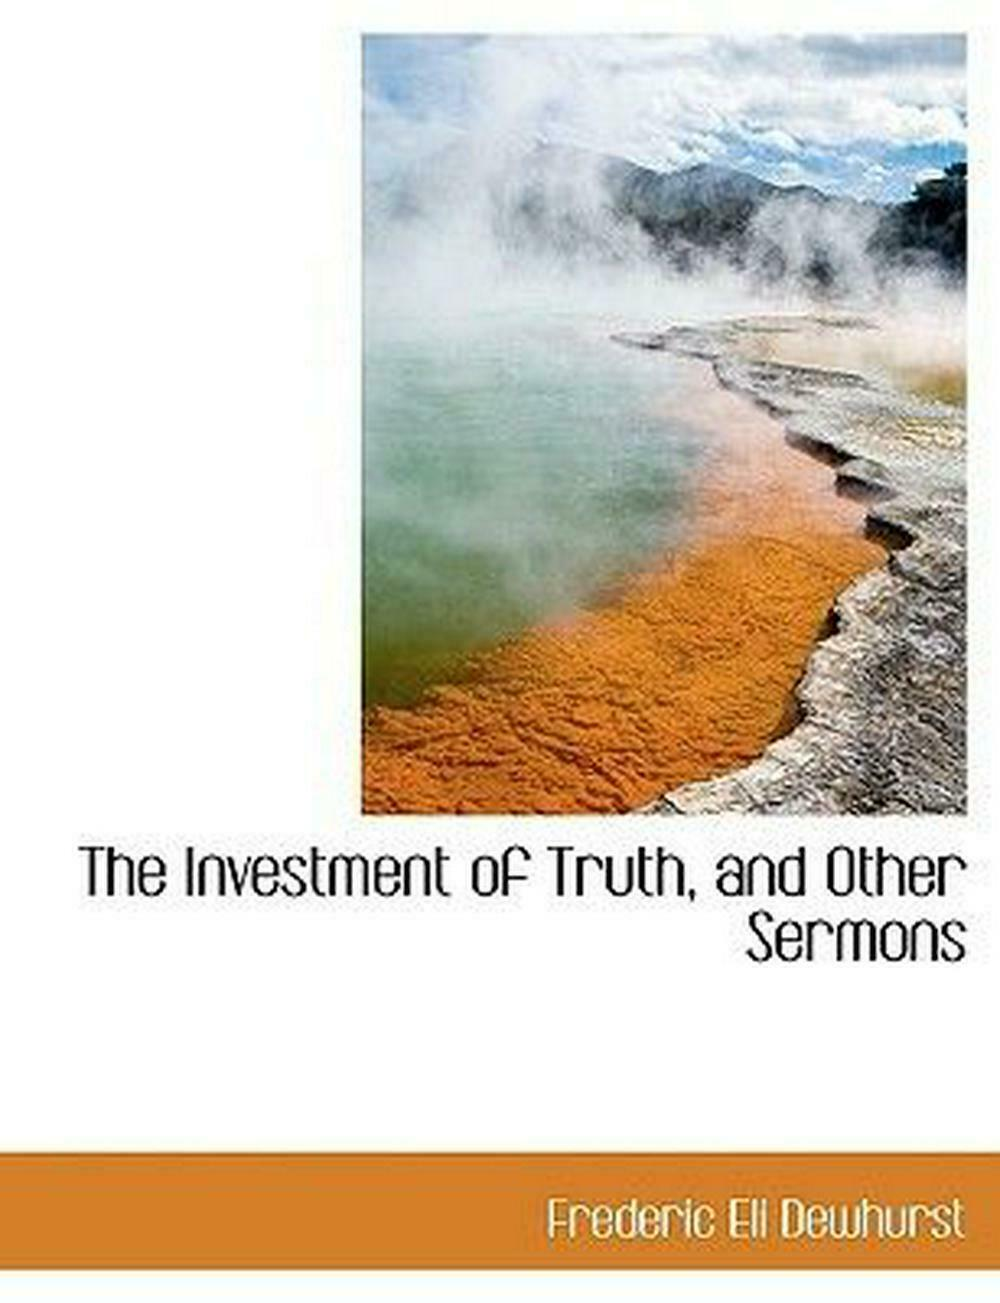 Investment of Truth, and Other Sermons by Frederic Eli Dewhurst (English) Hardco